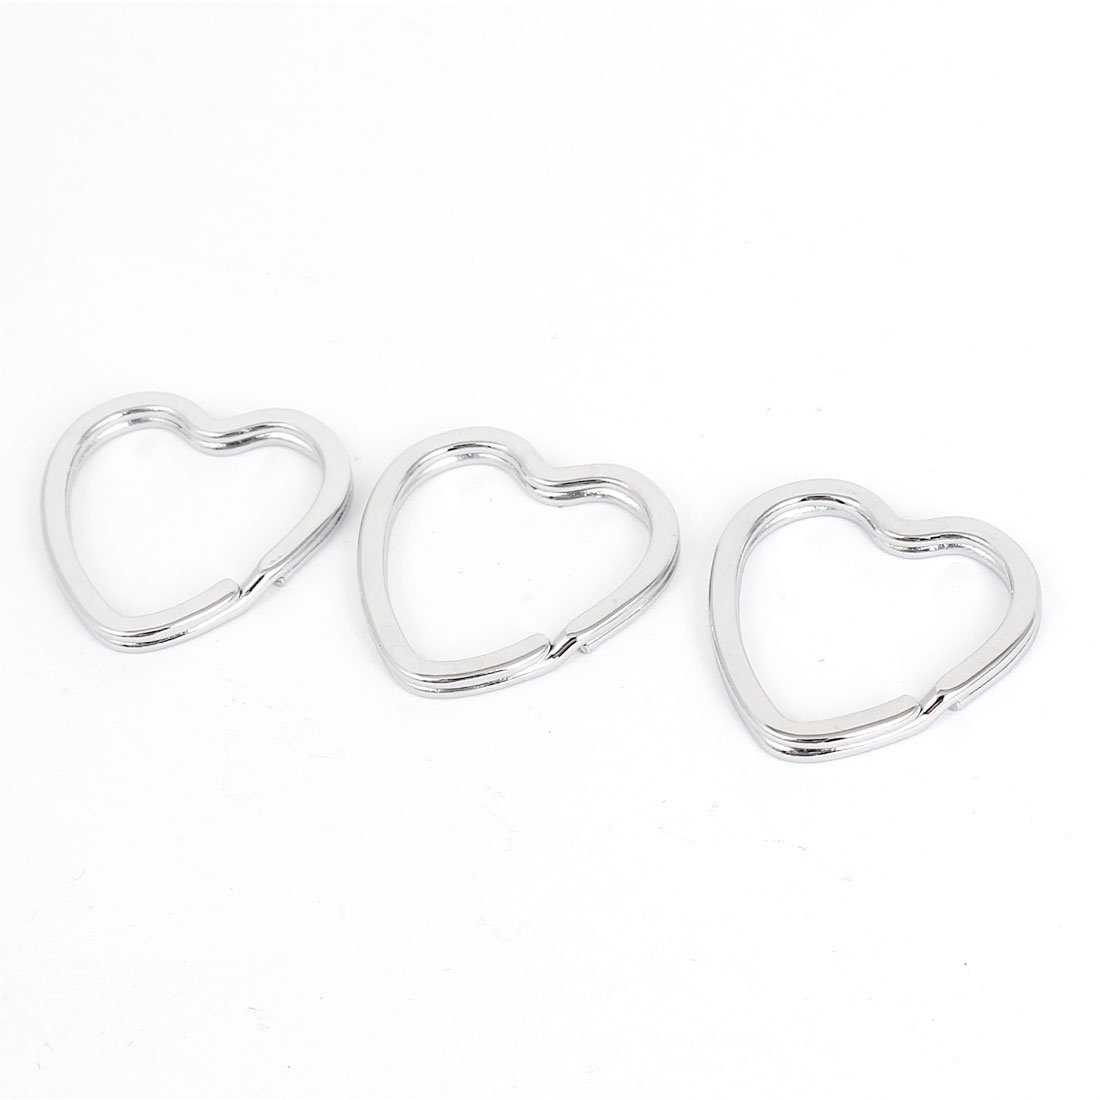 3 Pcs Silver Tone Metal Heart Design Double Flat Loop Split Rings Keyrings